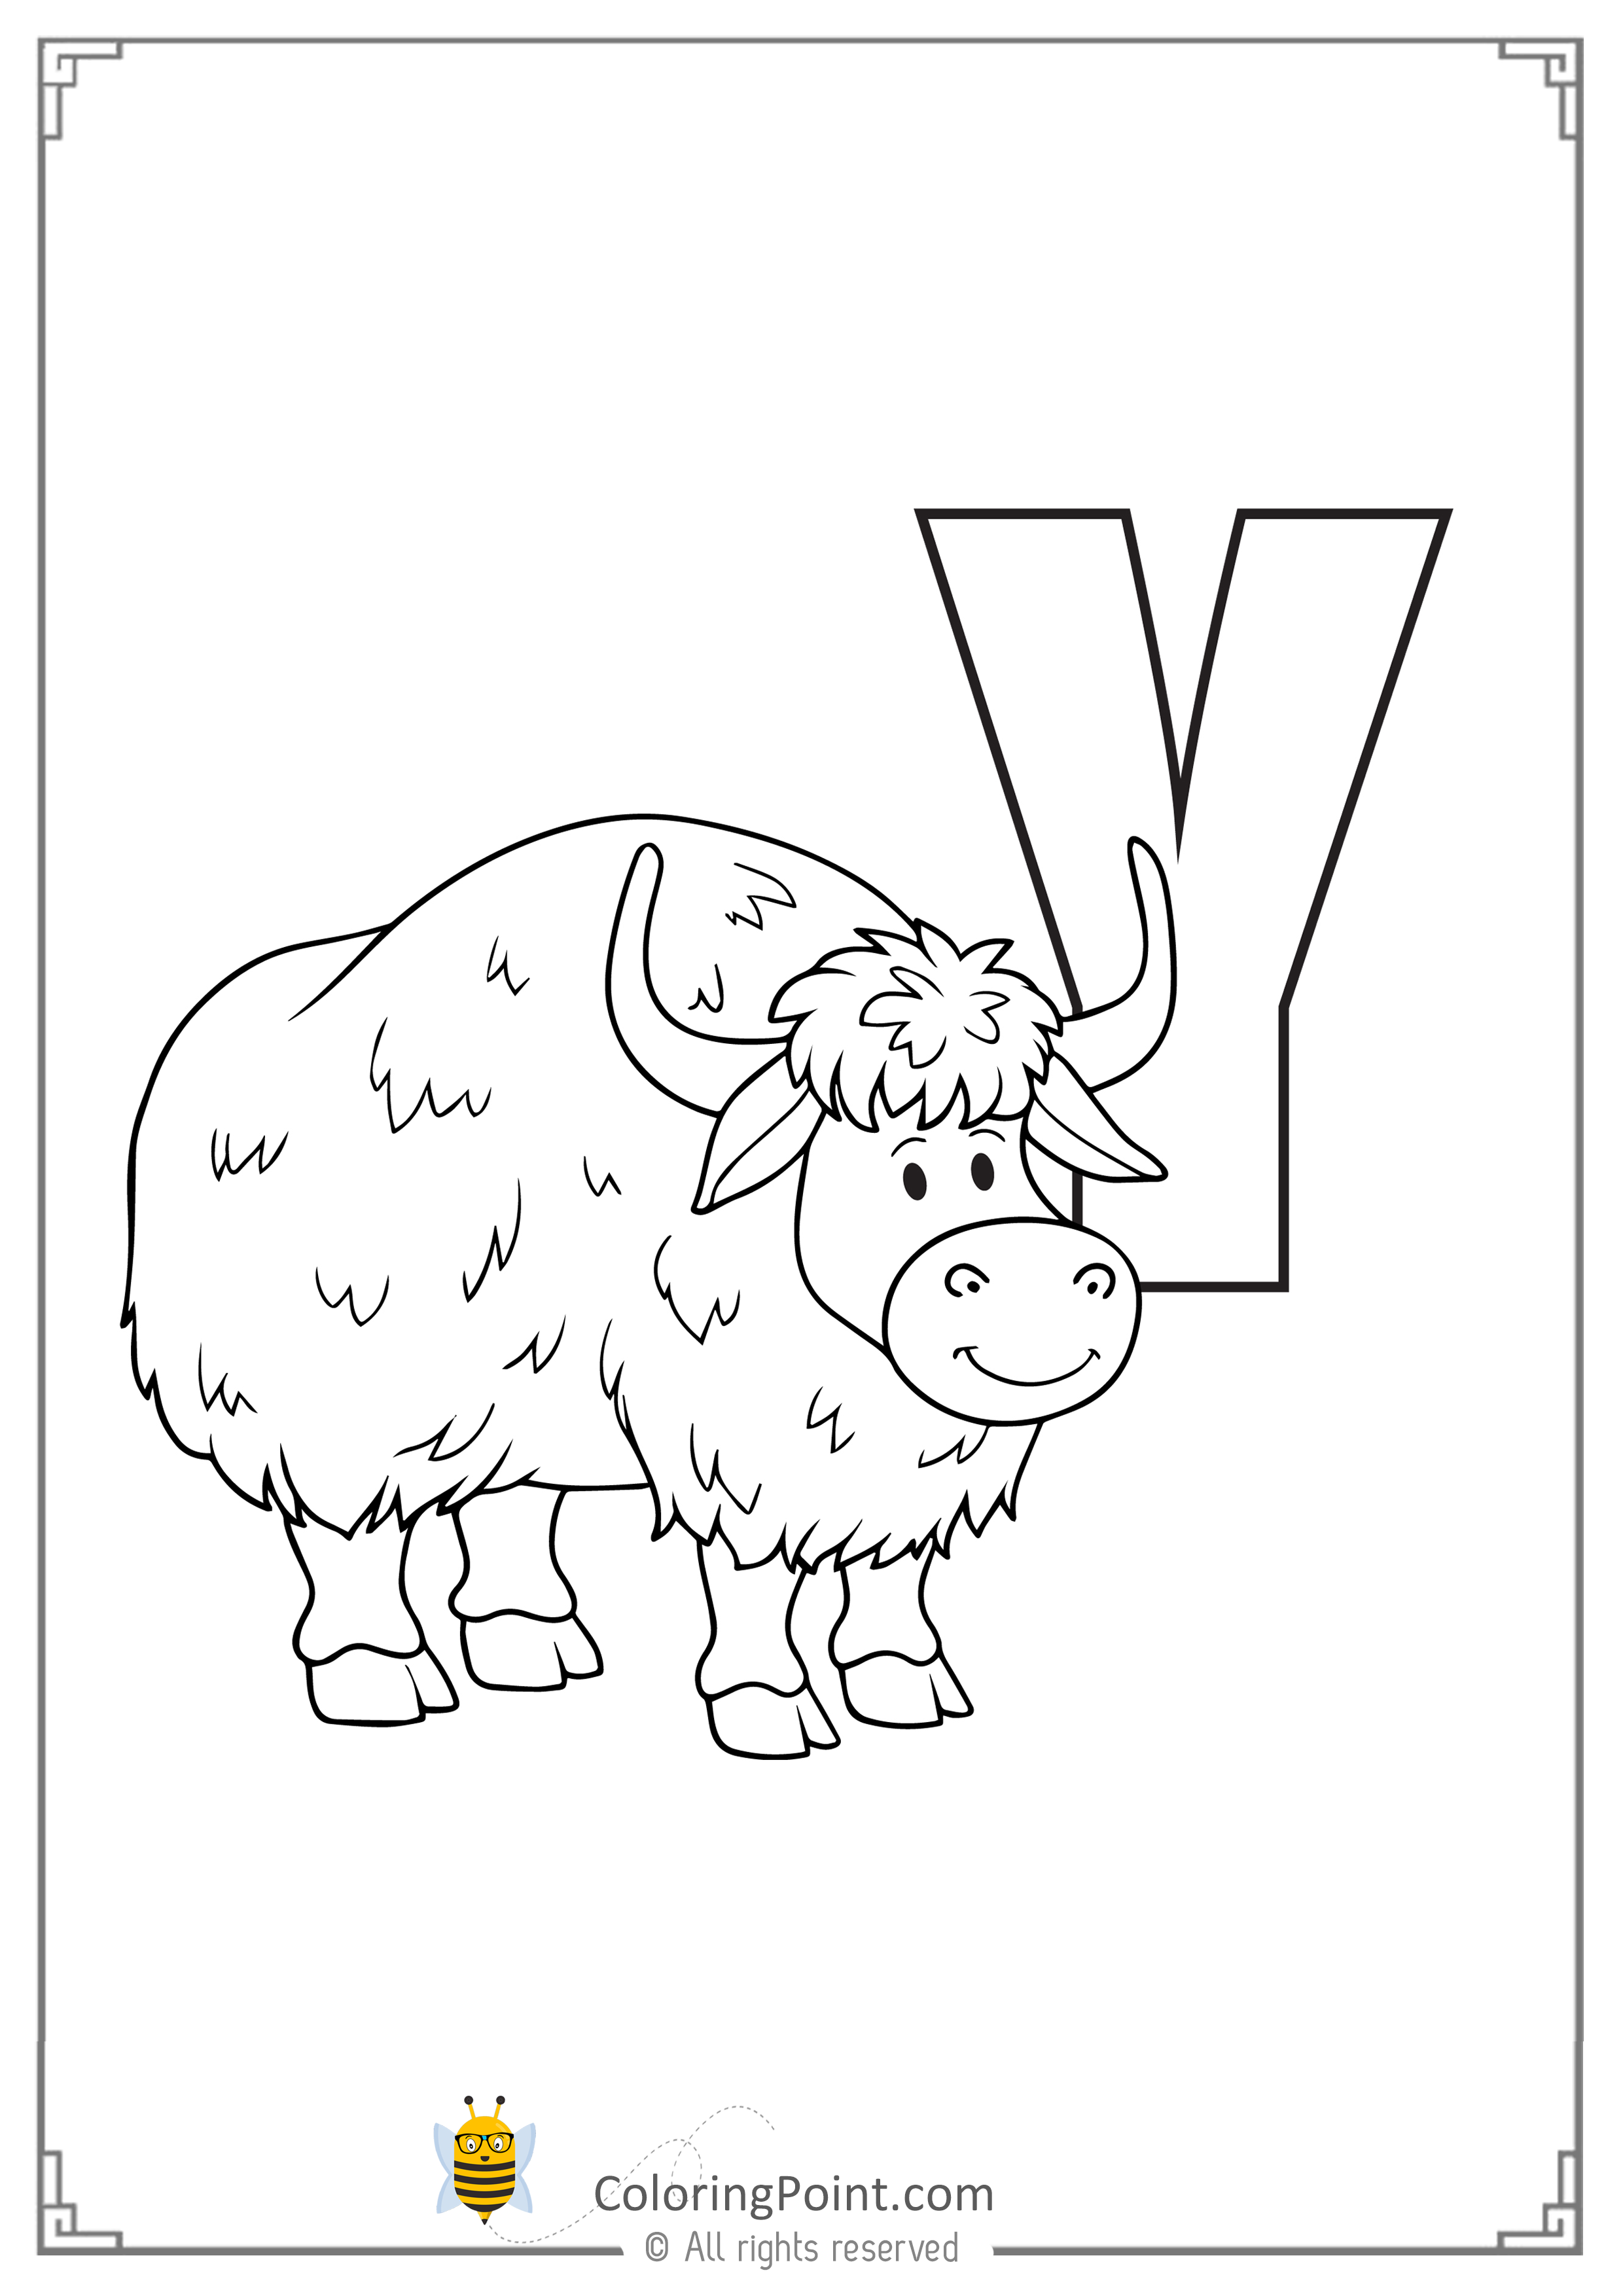 Printable Animal Alphabet Worksheets Letter Y Is For Yak Coloring Point Coloring Point Animal Alphabet Printable Animals Alphabet Worksheets